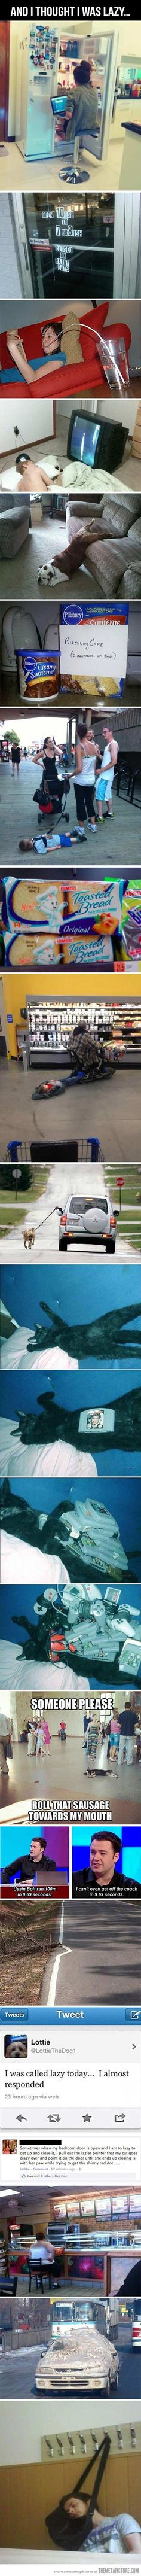 Hilarious funny humor lazy people and animals lmao Foto Fails, Haha, Lazy People, Funny Pins, Funny Stuff, I Love To Laugh, Laughing So Hard, Funny Cute, Freaking Hilarious